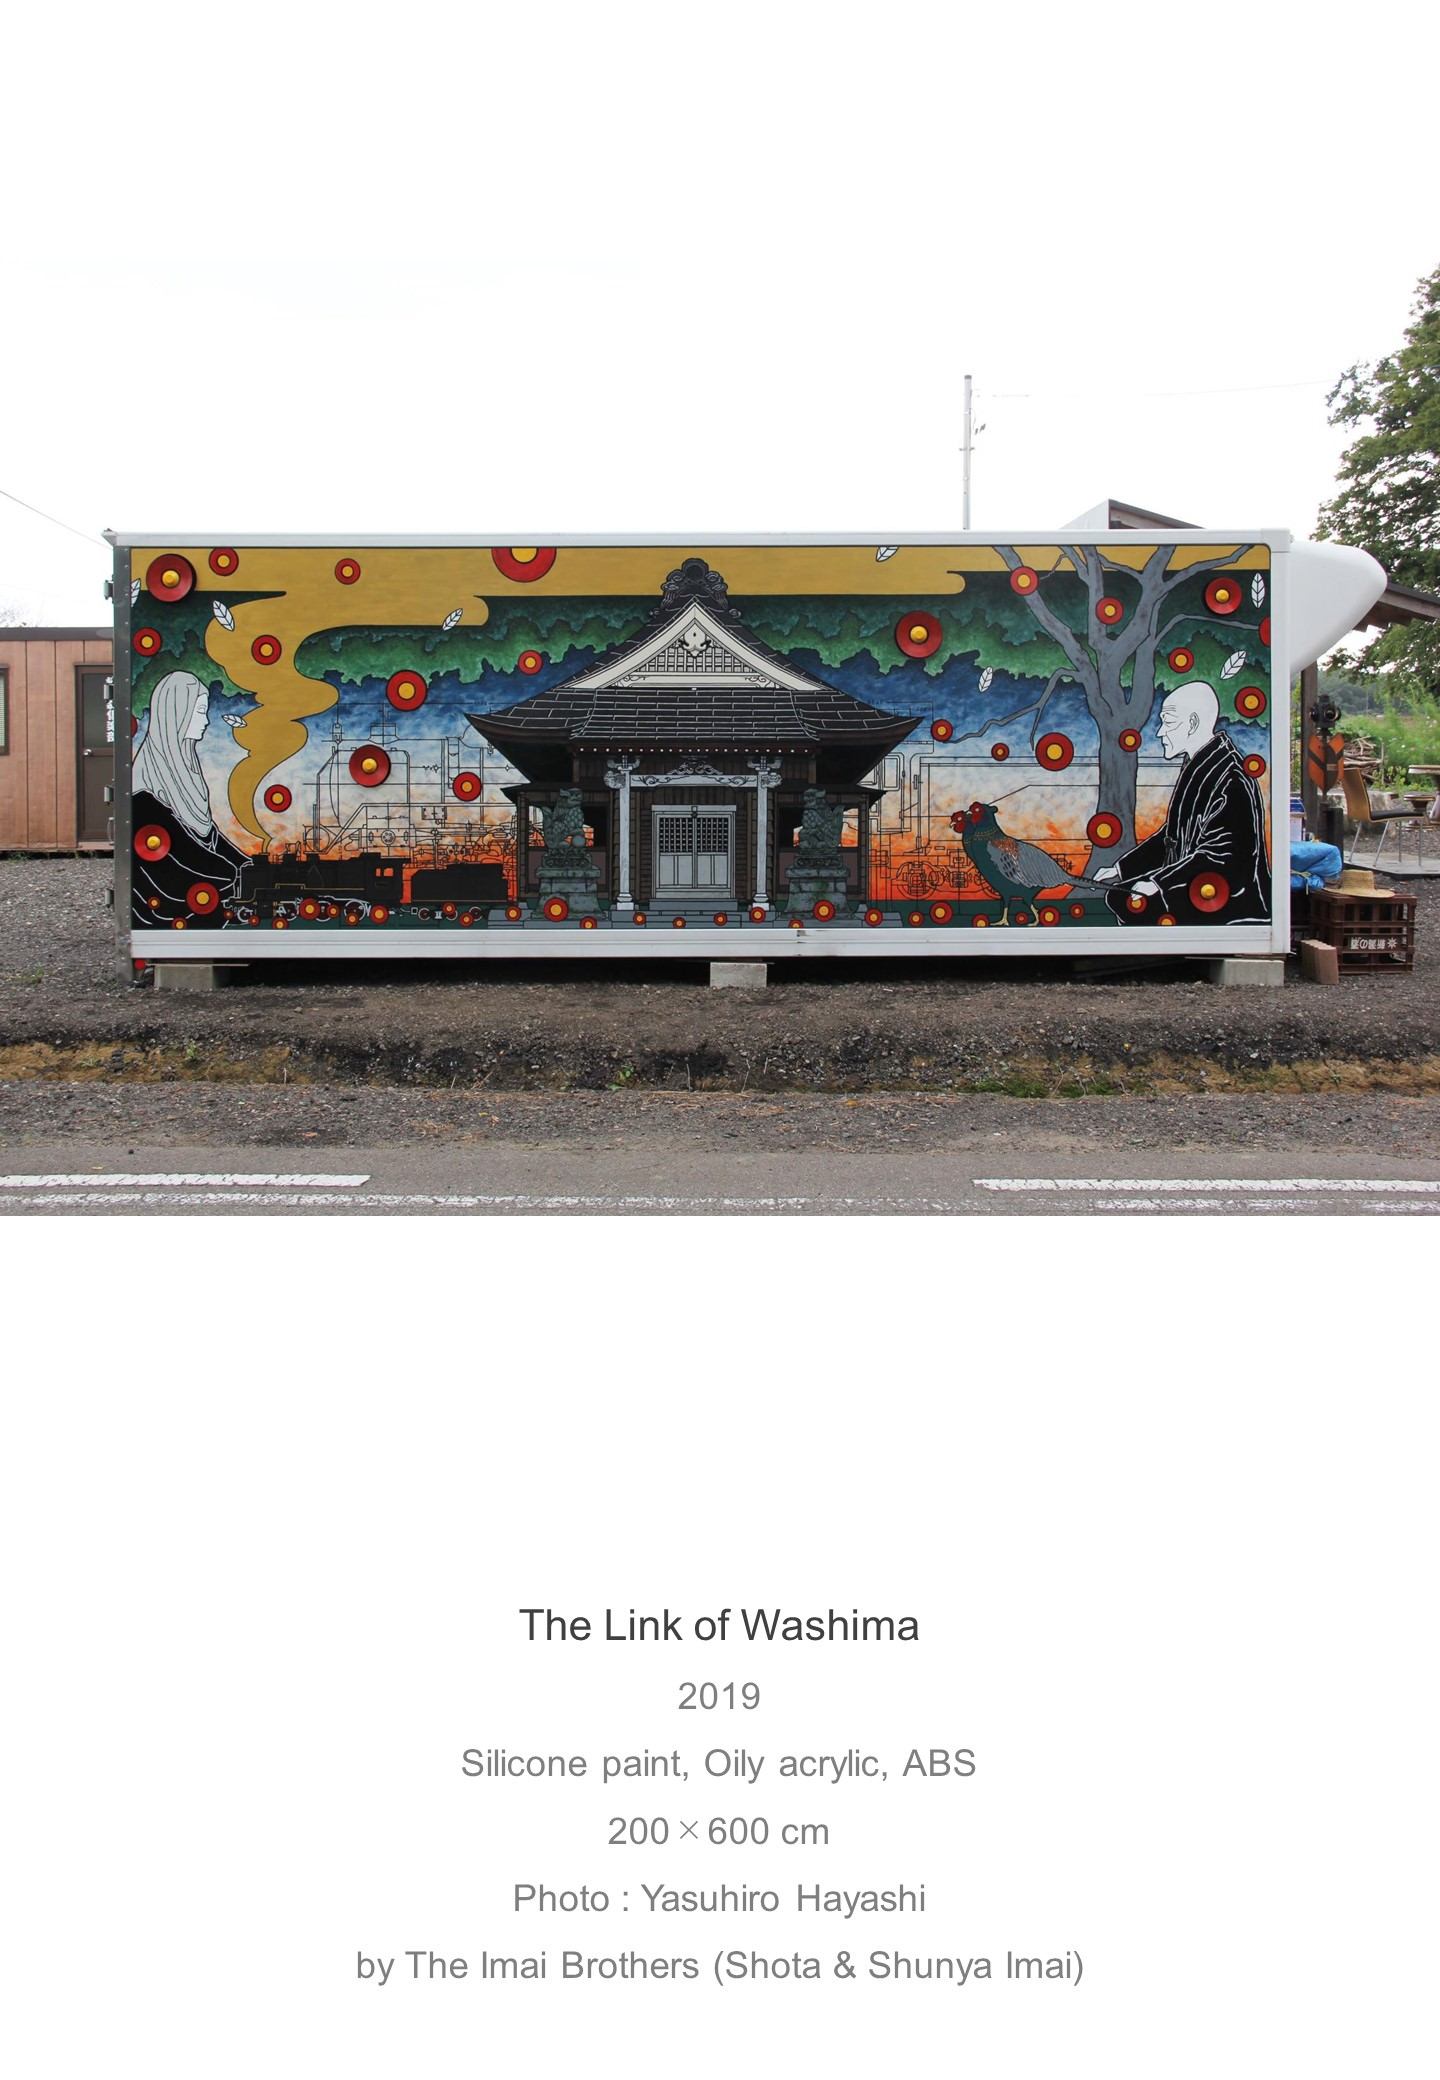 The Imai Brothers's Artwork of The Link of Washima